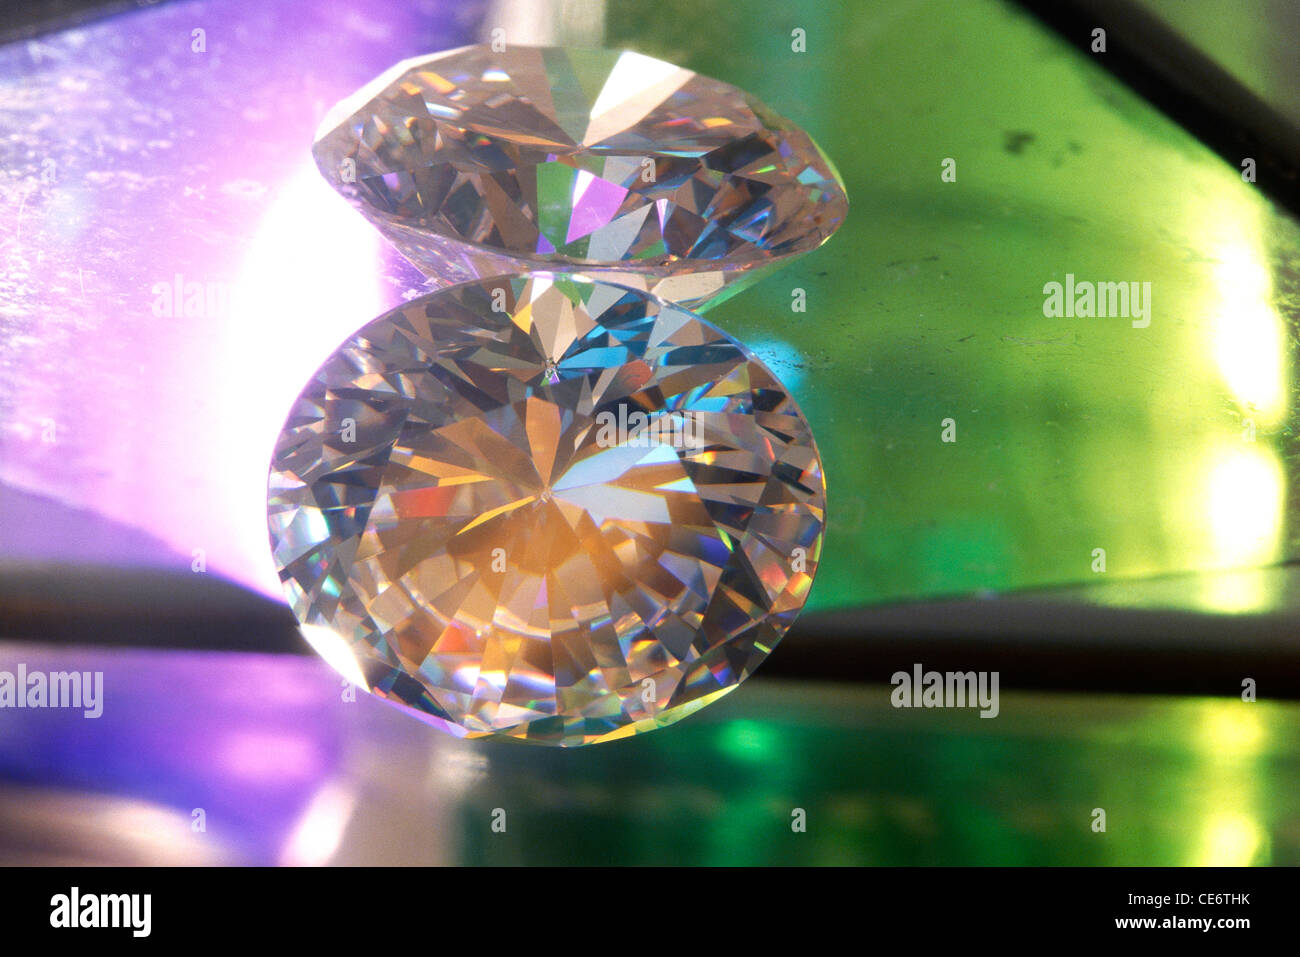 AAD 85190 : cut polished shining diamonds showing facets colours - Stock Image